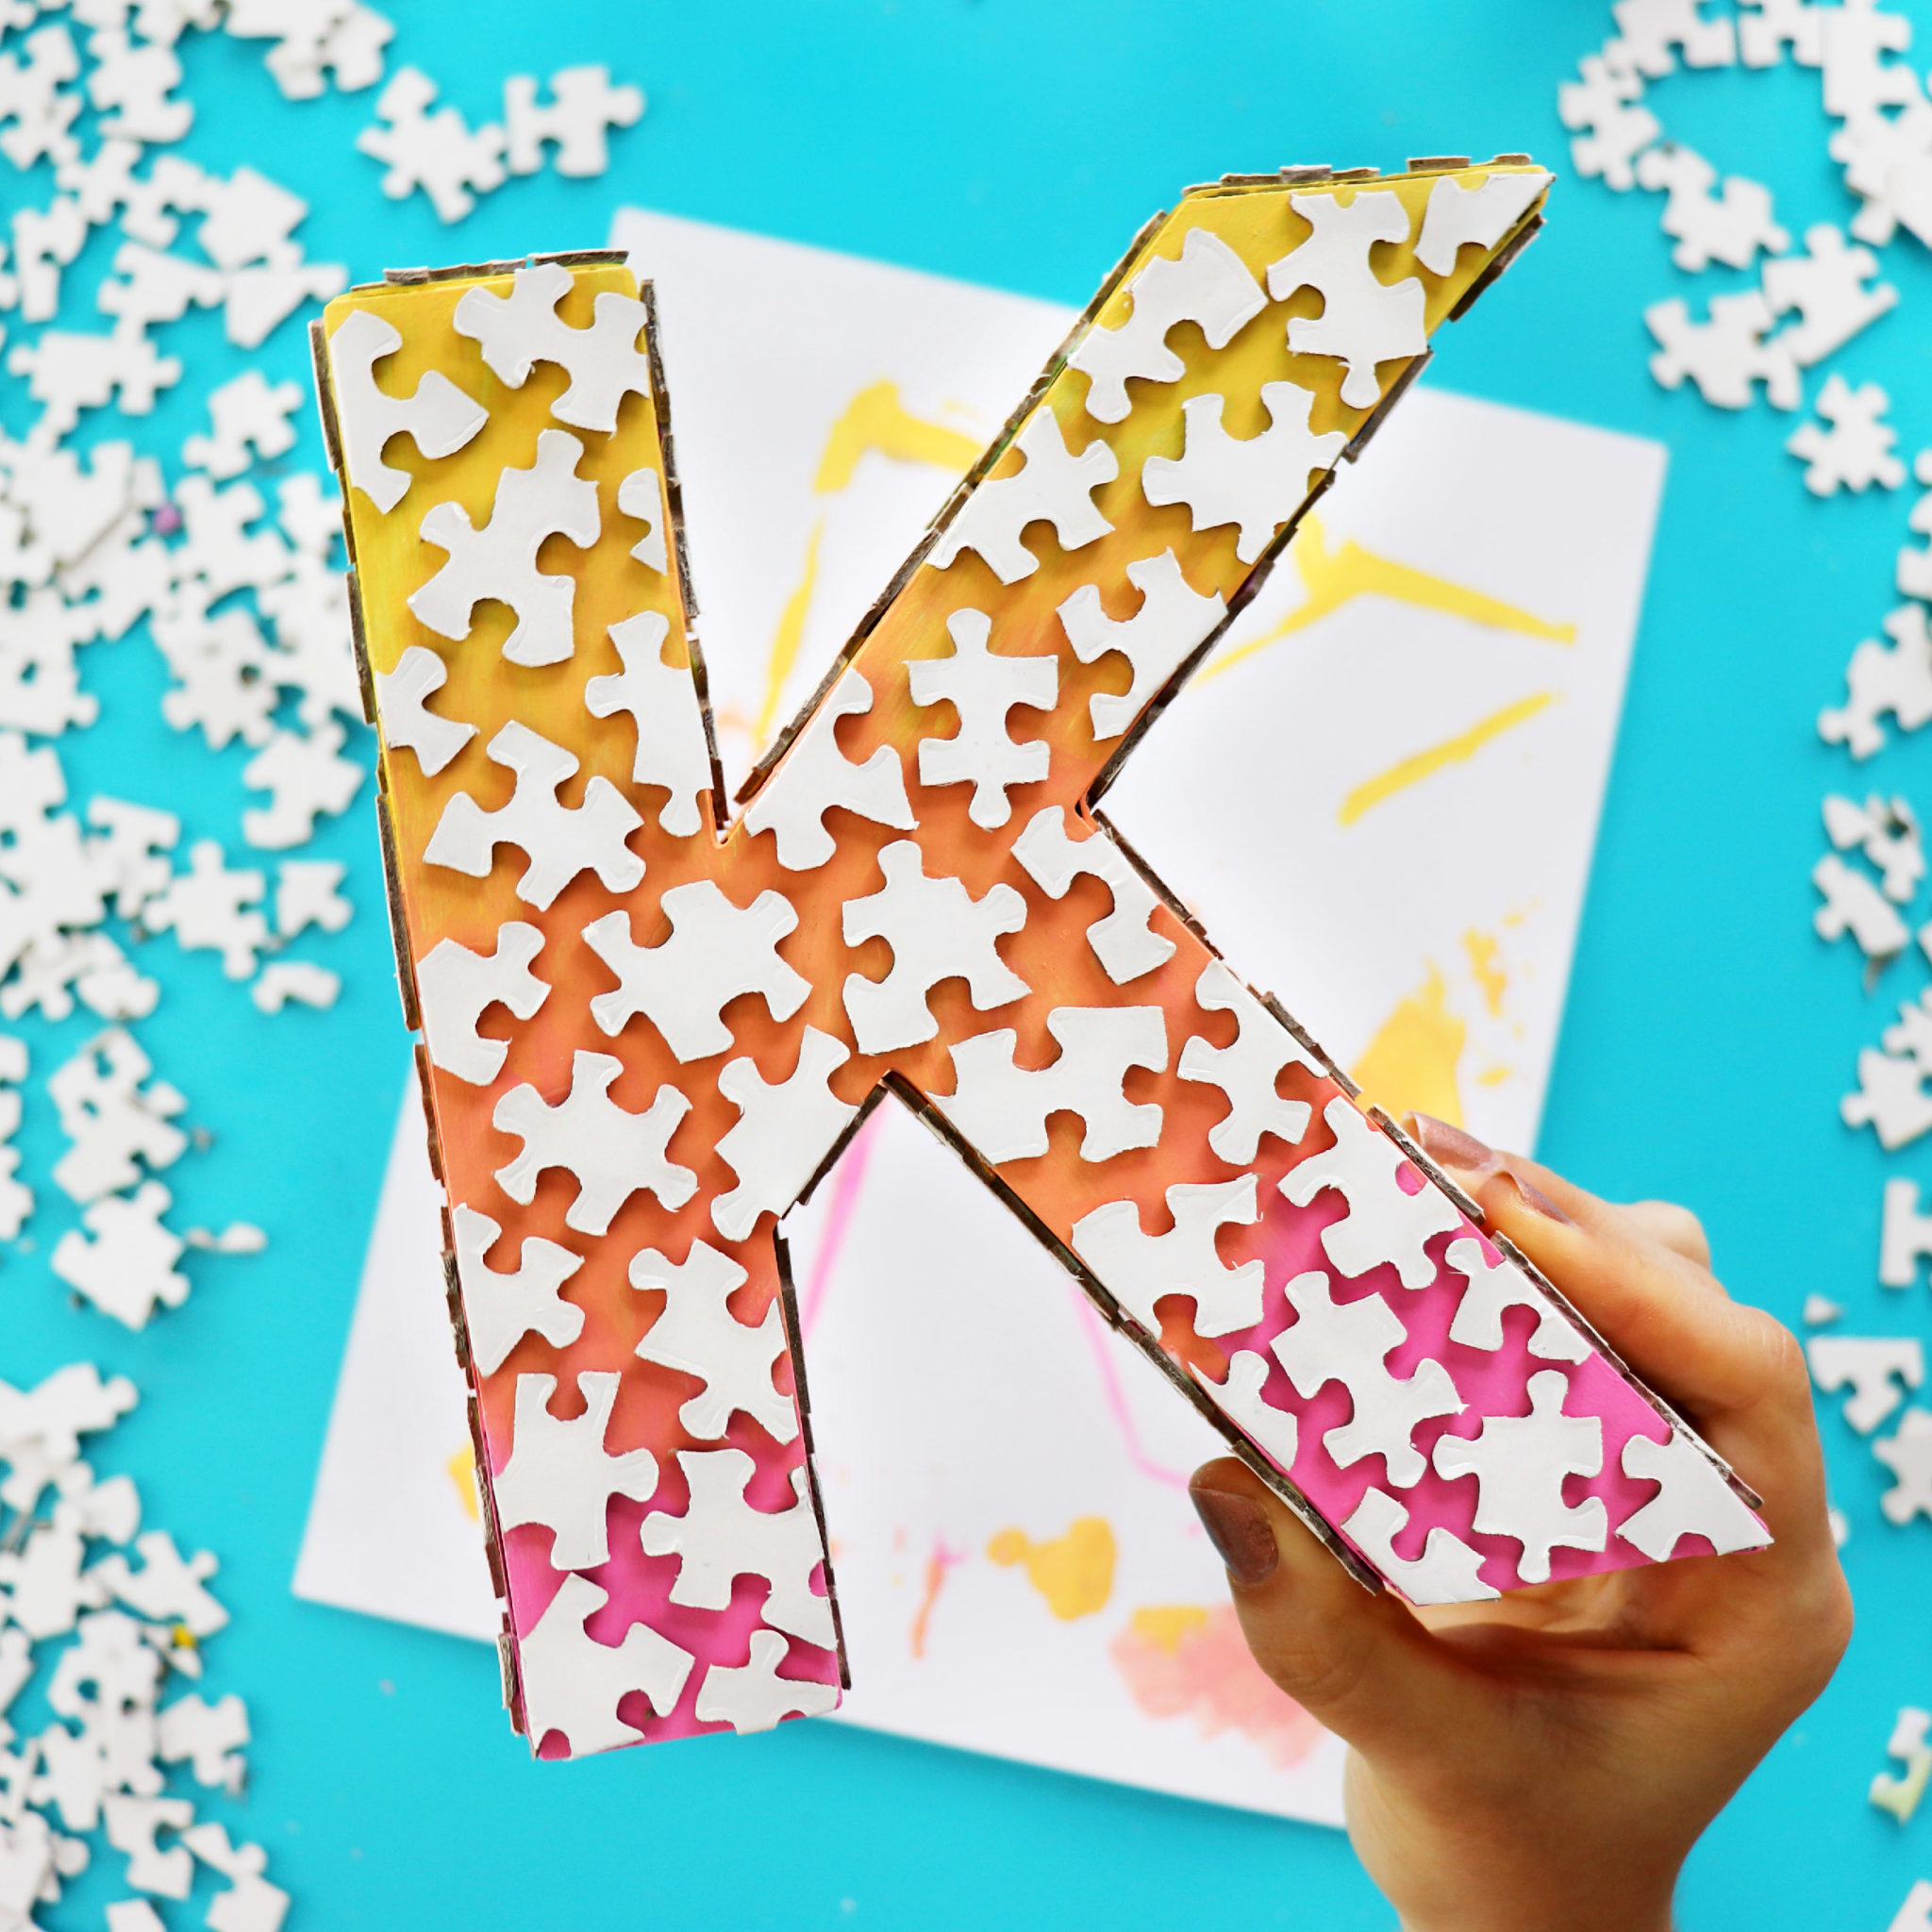 Diys To Make From Old Jigsaw Puzzles